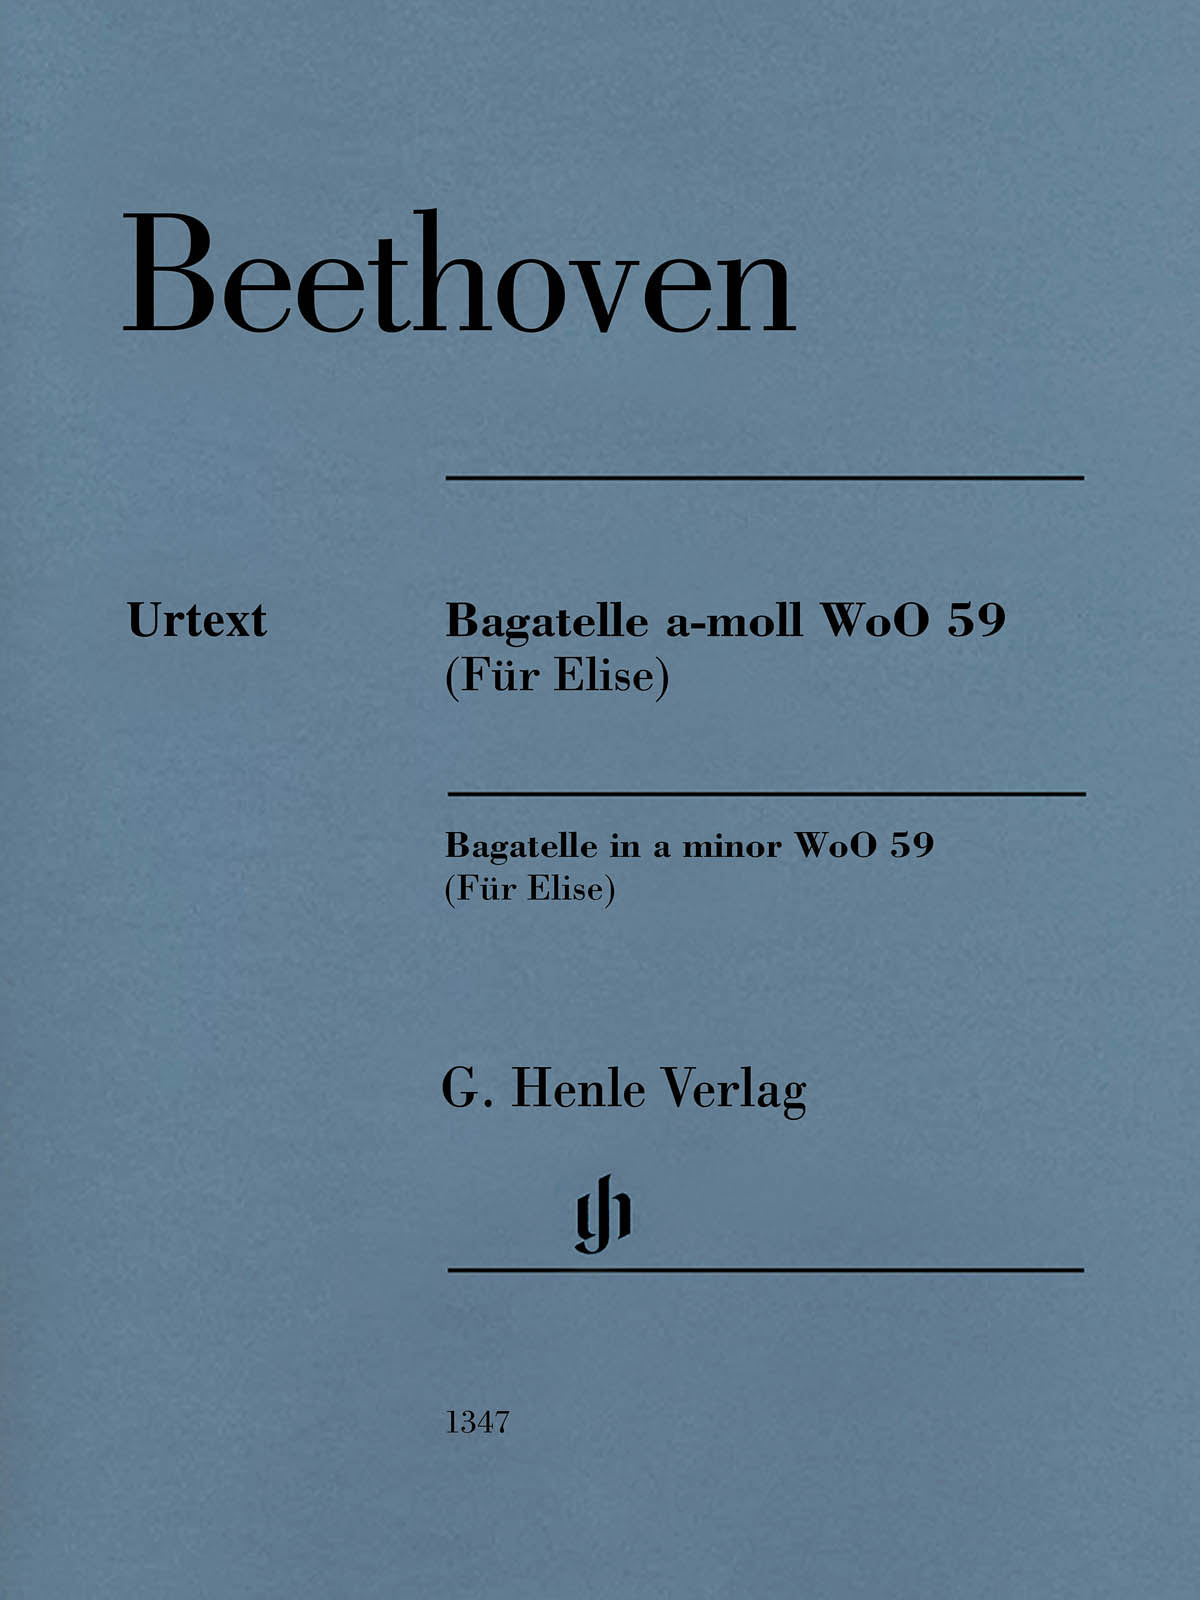 Beethoven: Bagatelle in A Minor, WoO 59 (Für Elise)